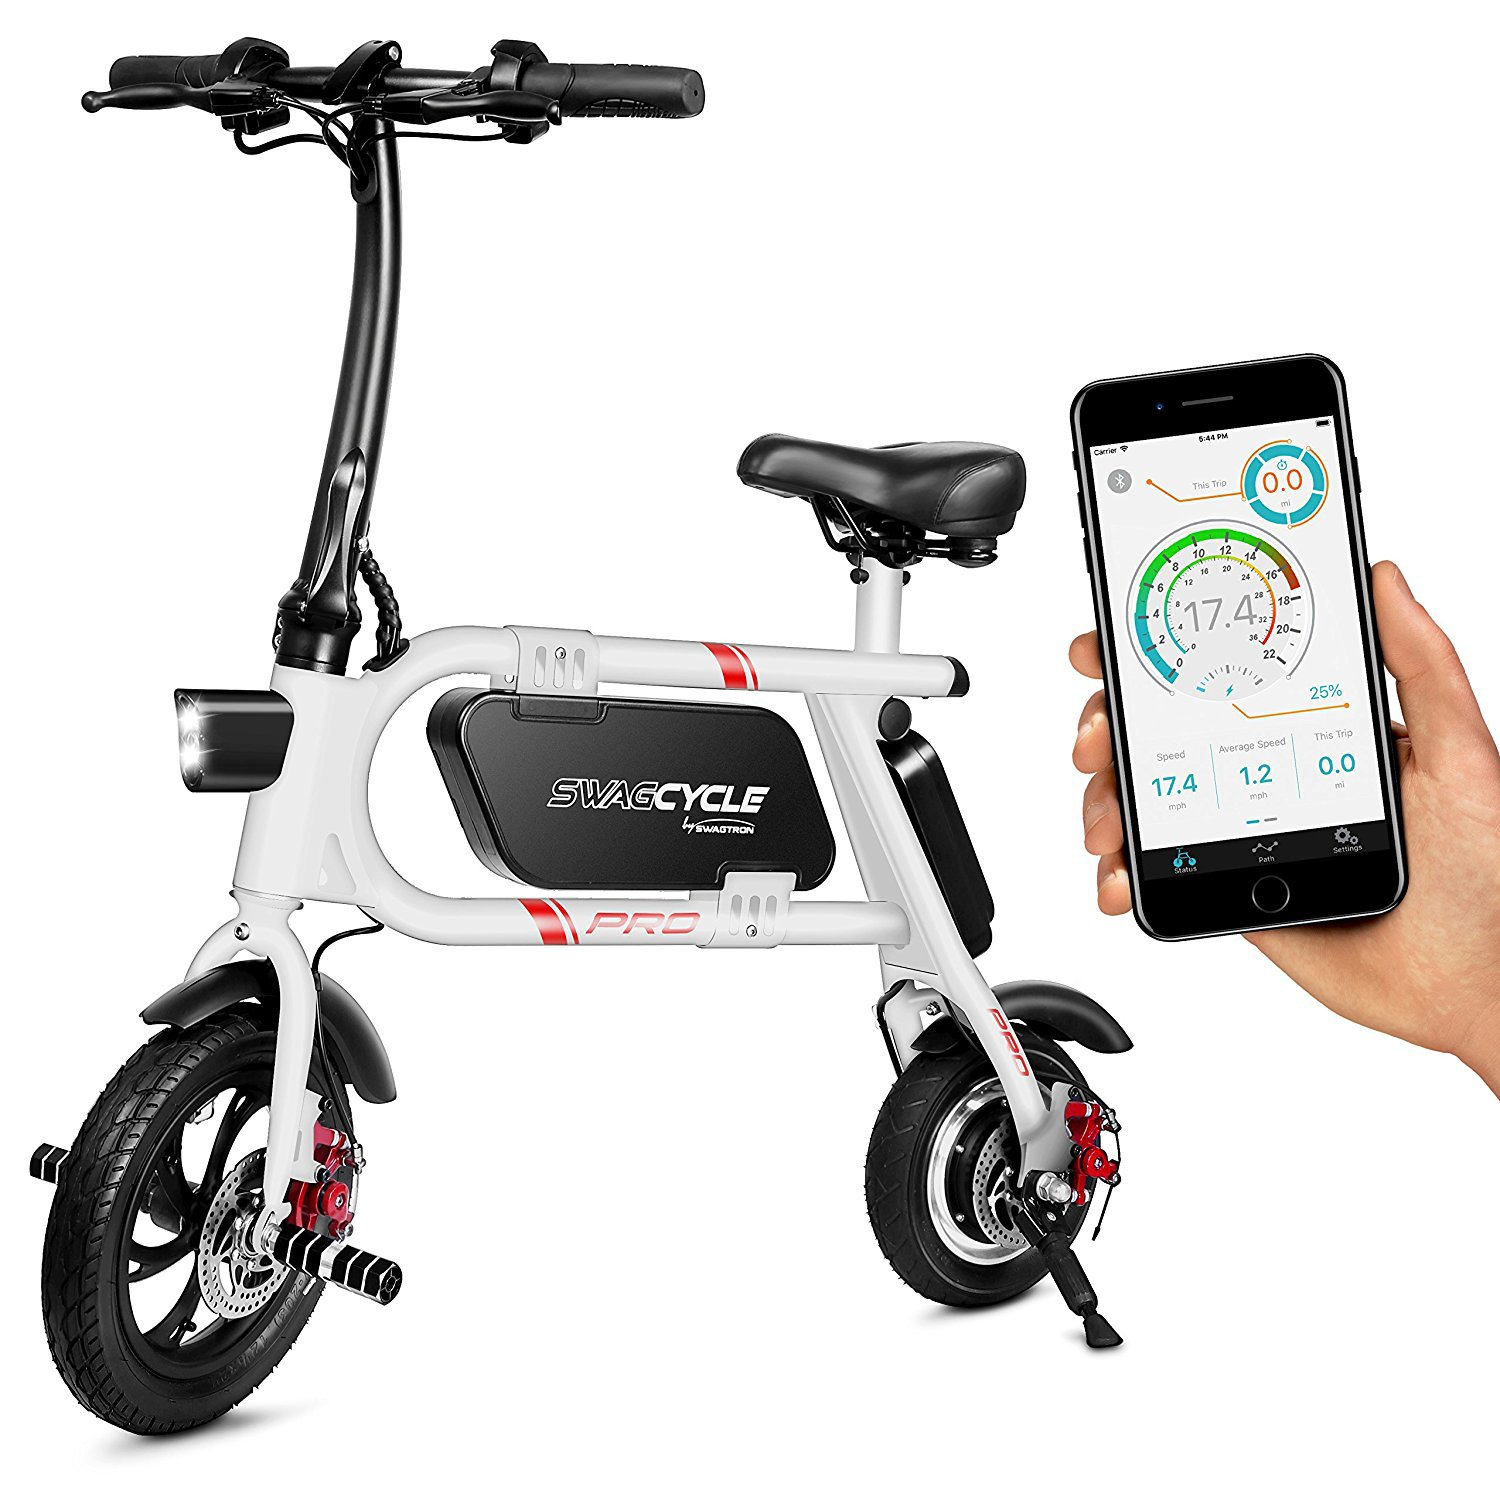 Swagtron Cycle Pro Folding Electric Bike, Pedal Free and App Enabled, 18 mph E Bike with USB Port to Charge on The Go (White) by Swagtron